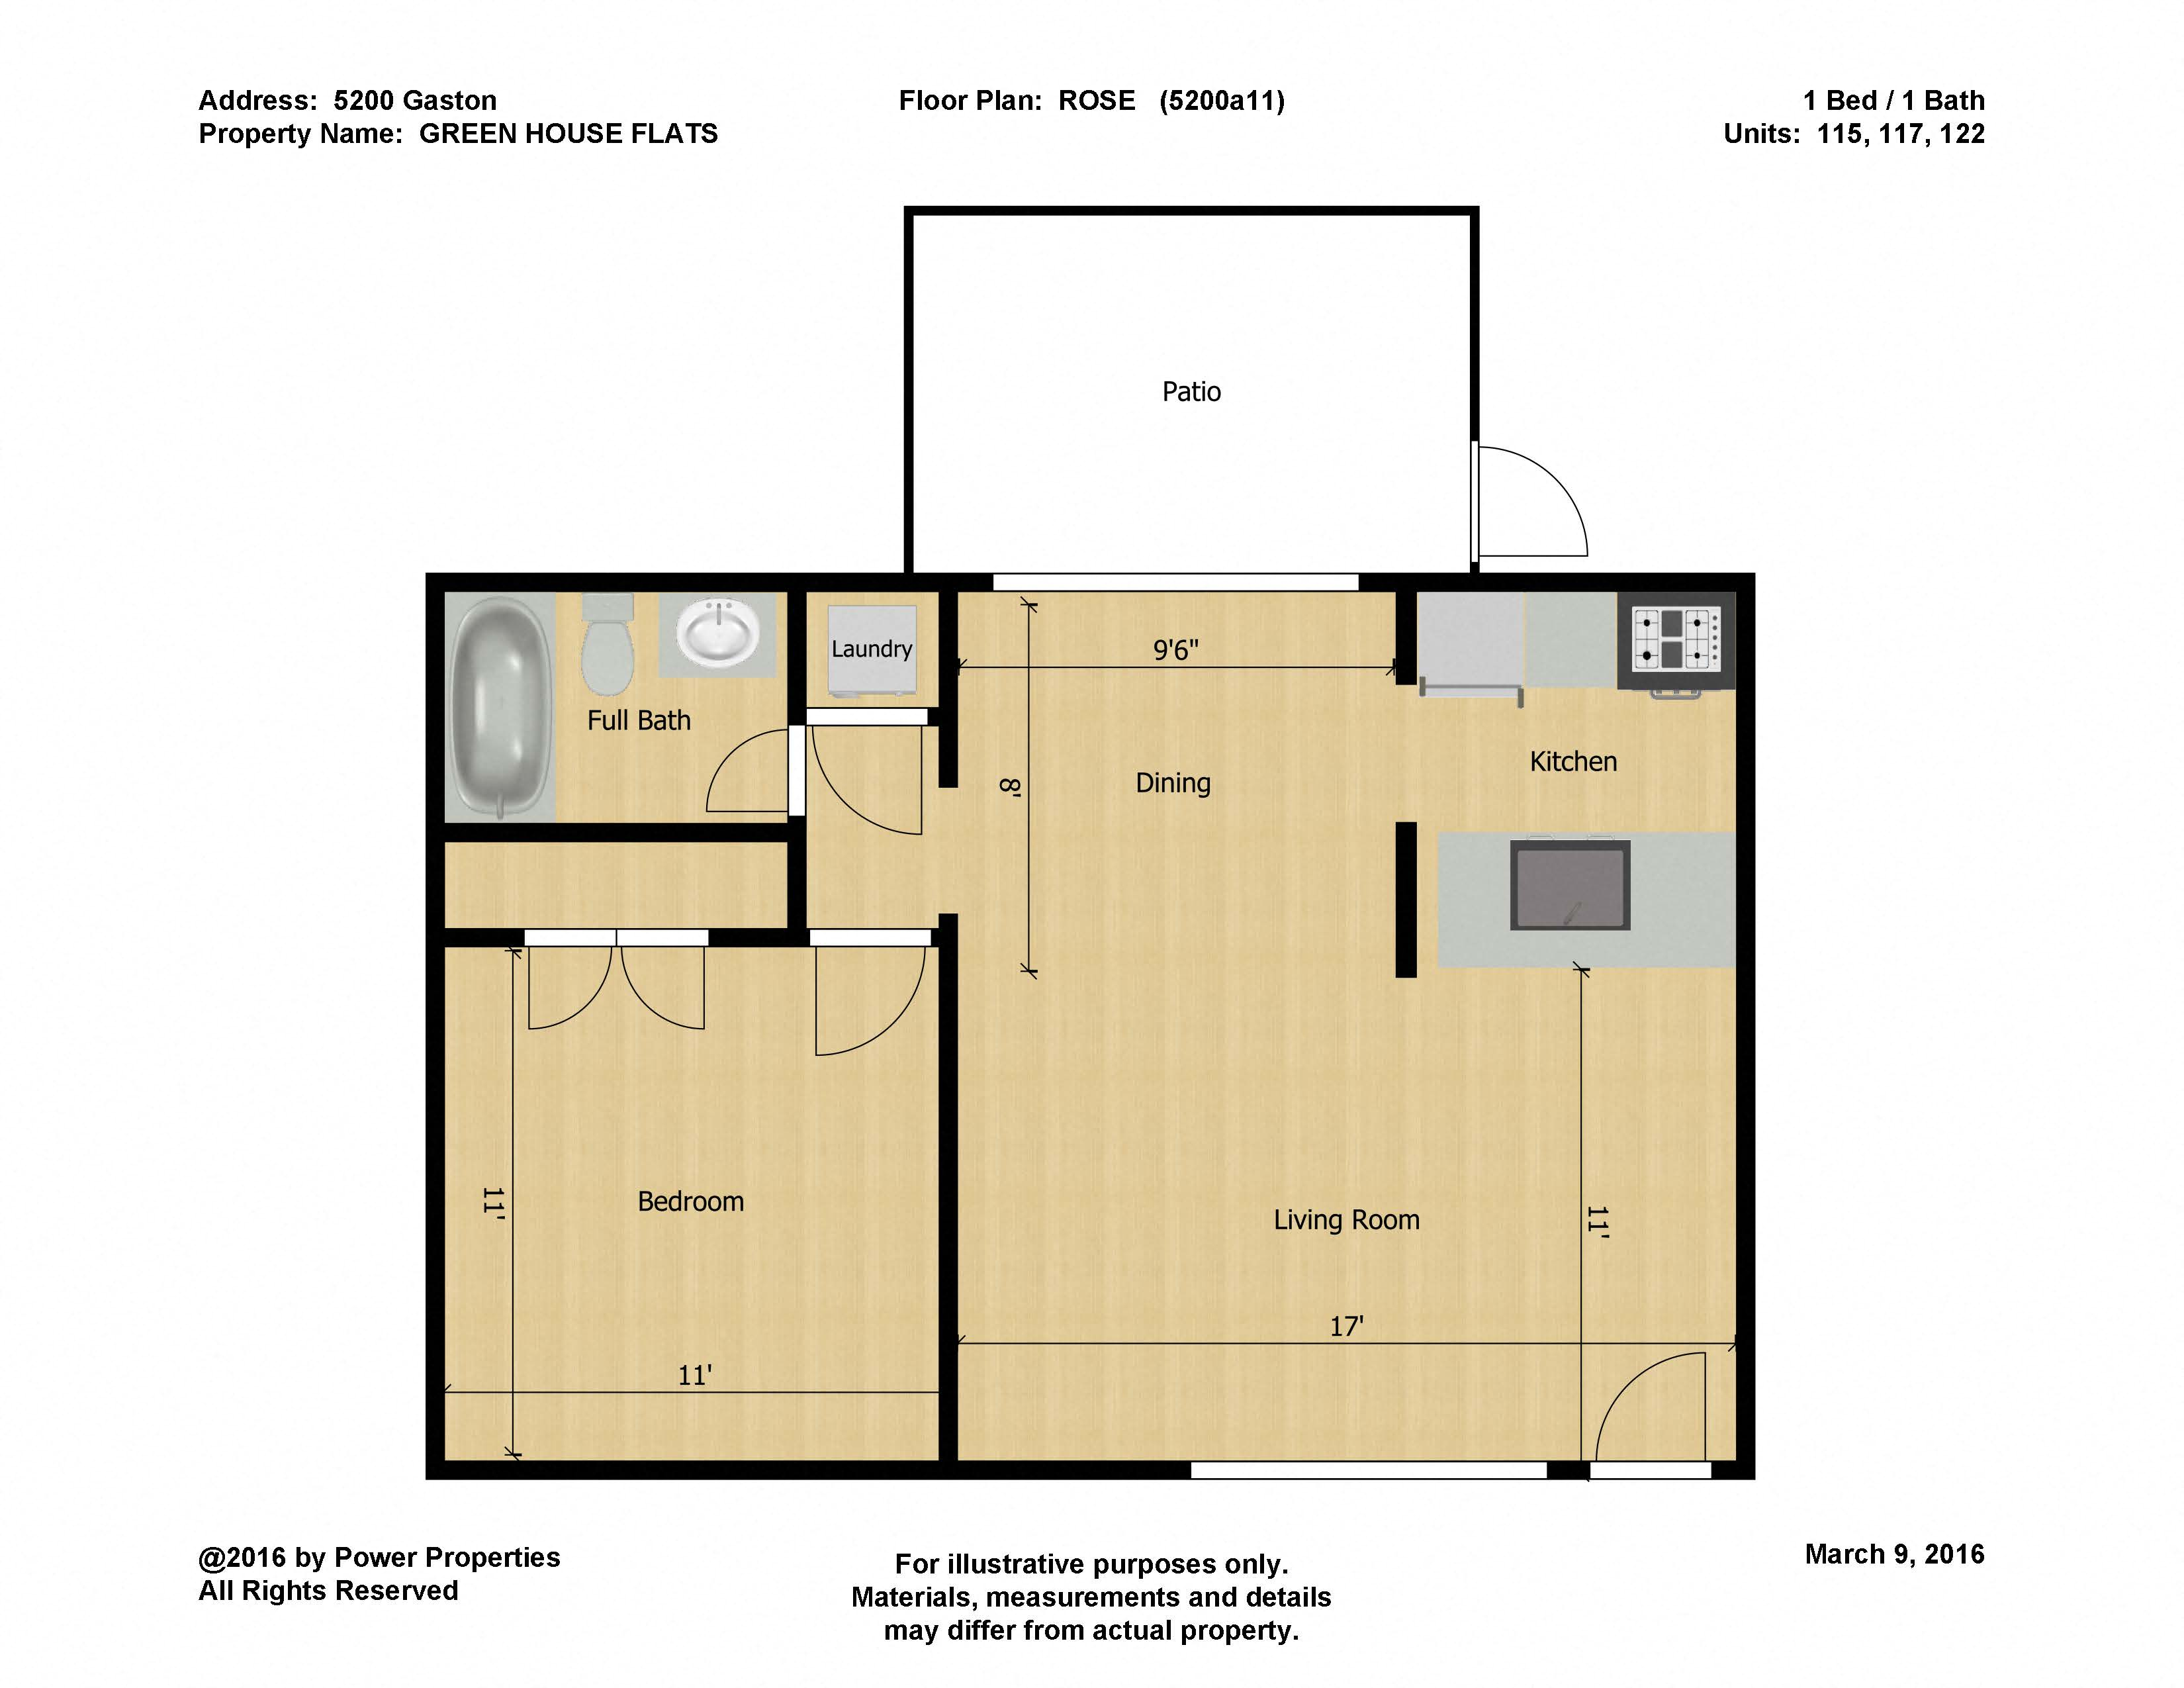 5200 Gaston GREEN HOUSE FLATS - ROSE (1 Bed - 1 Bath)